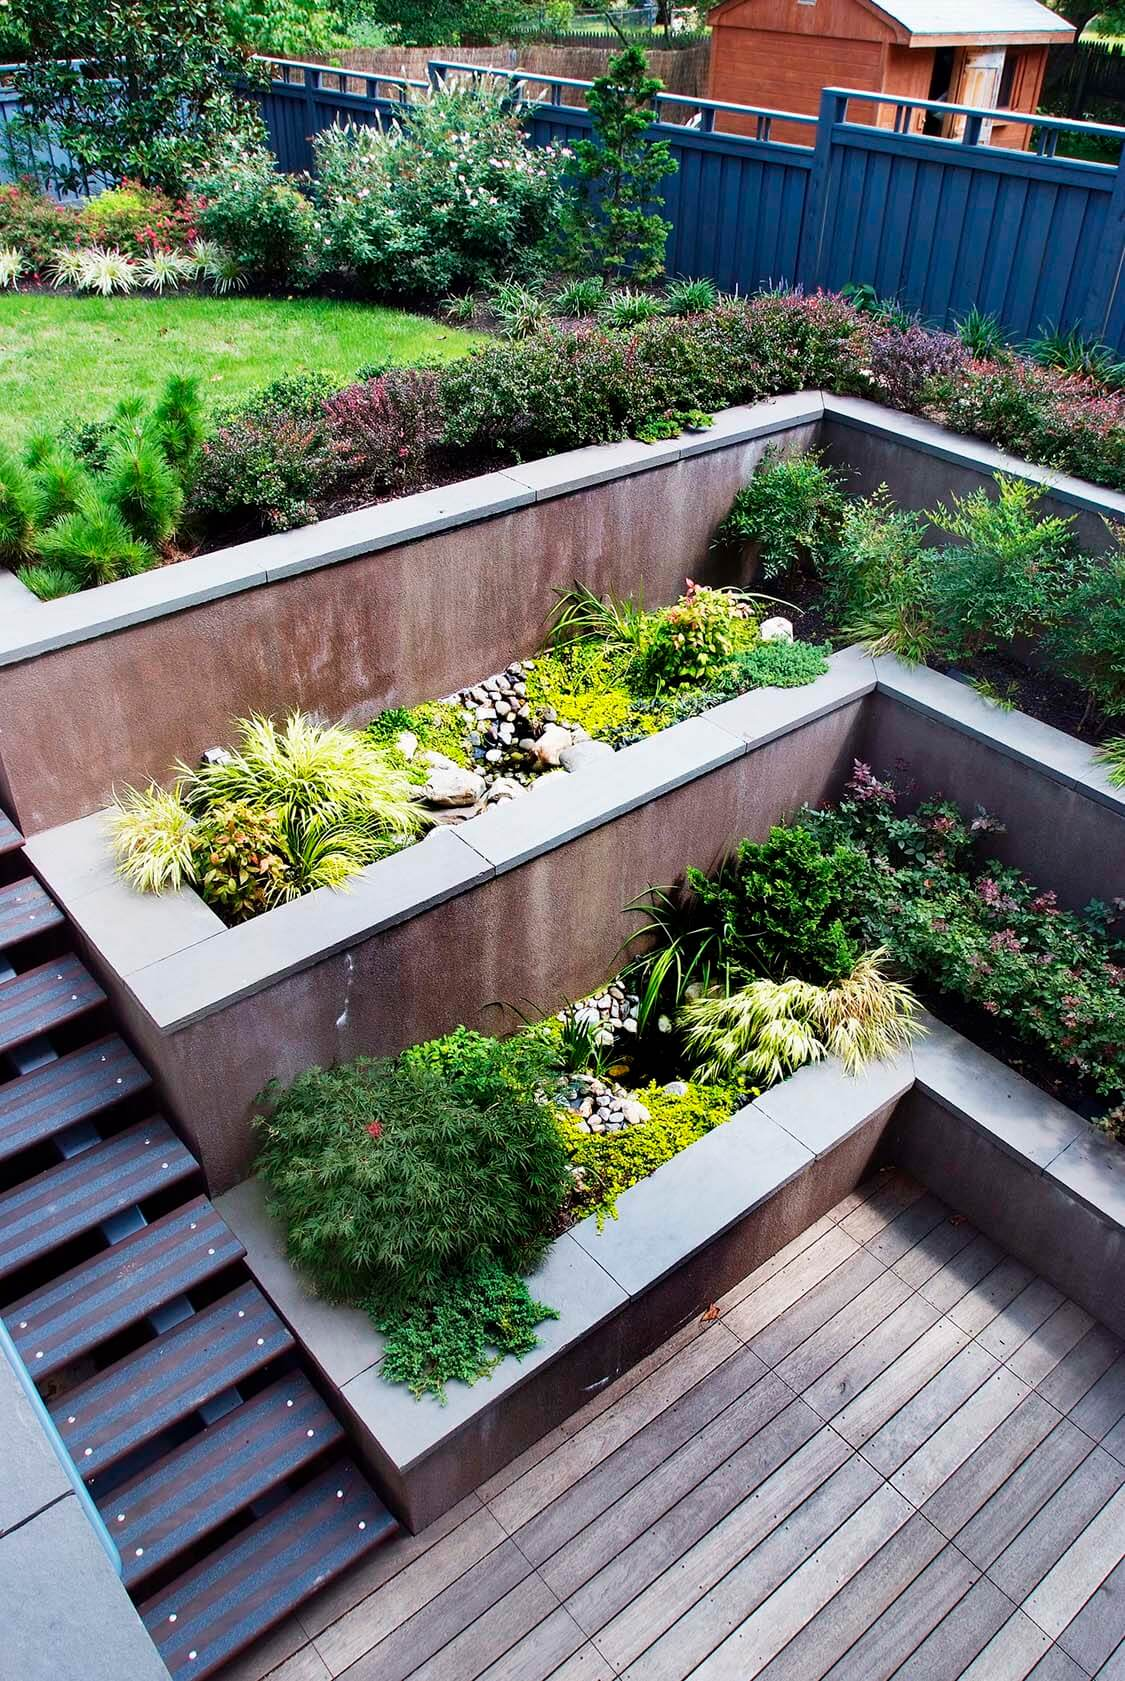 Tiered Concrete Built In Deck Planters